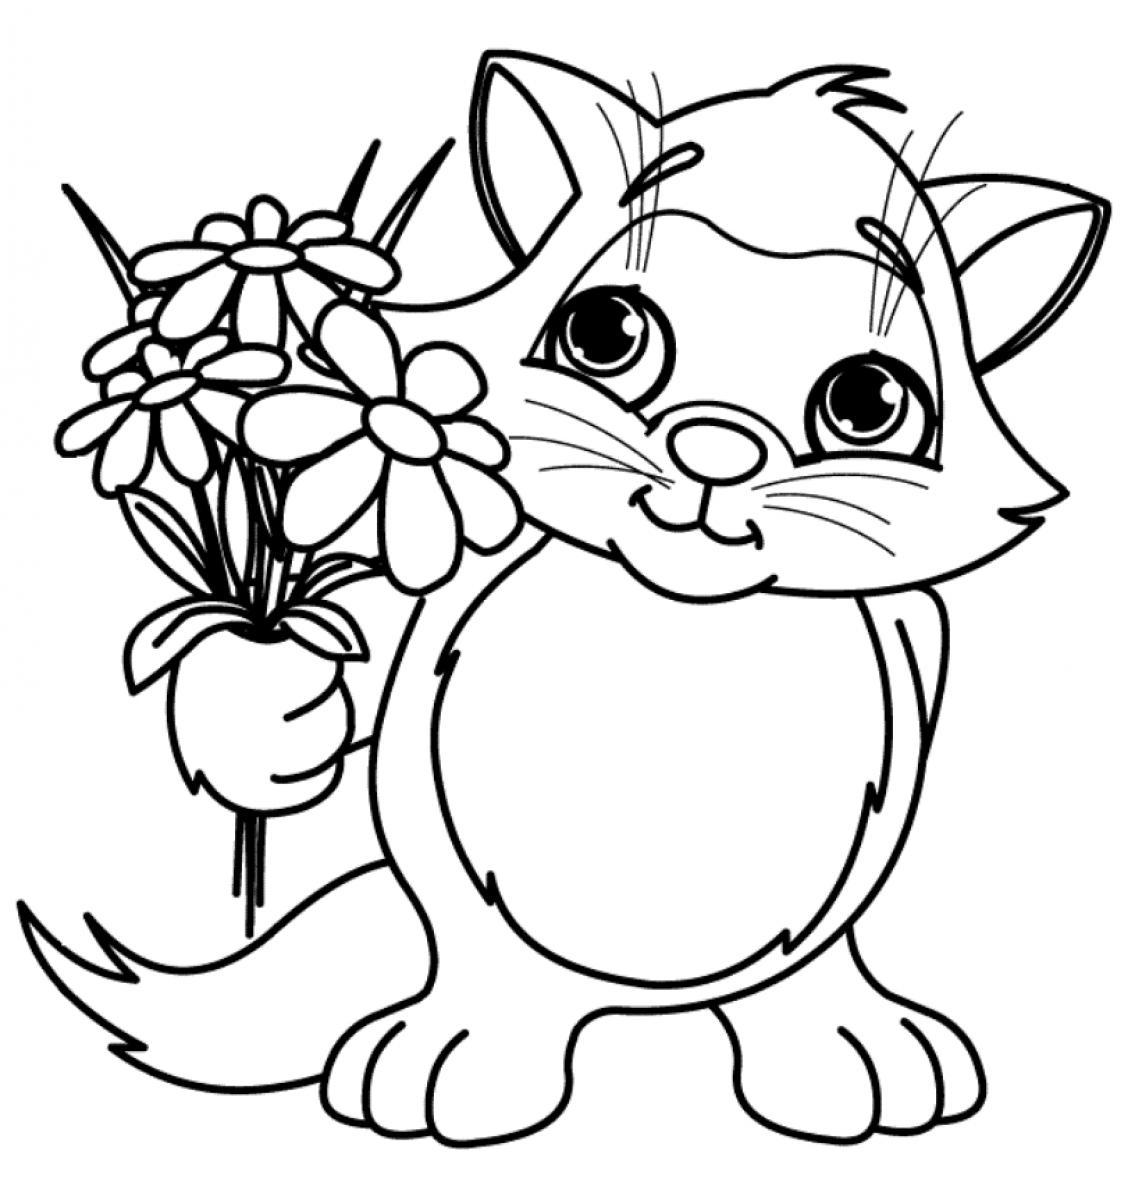 flowers color pages spring flower coloring pages to download and print for free flowers color pages